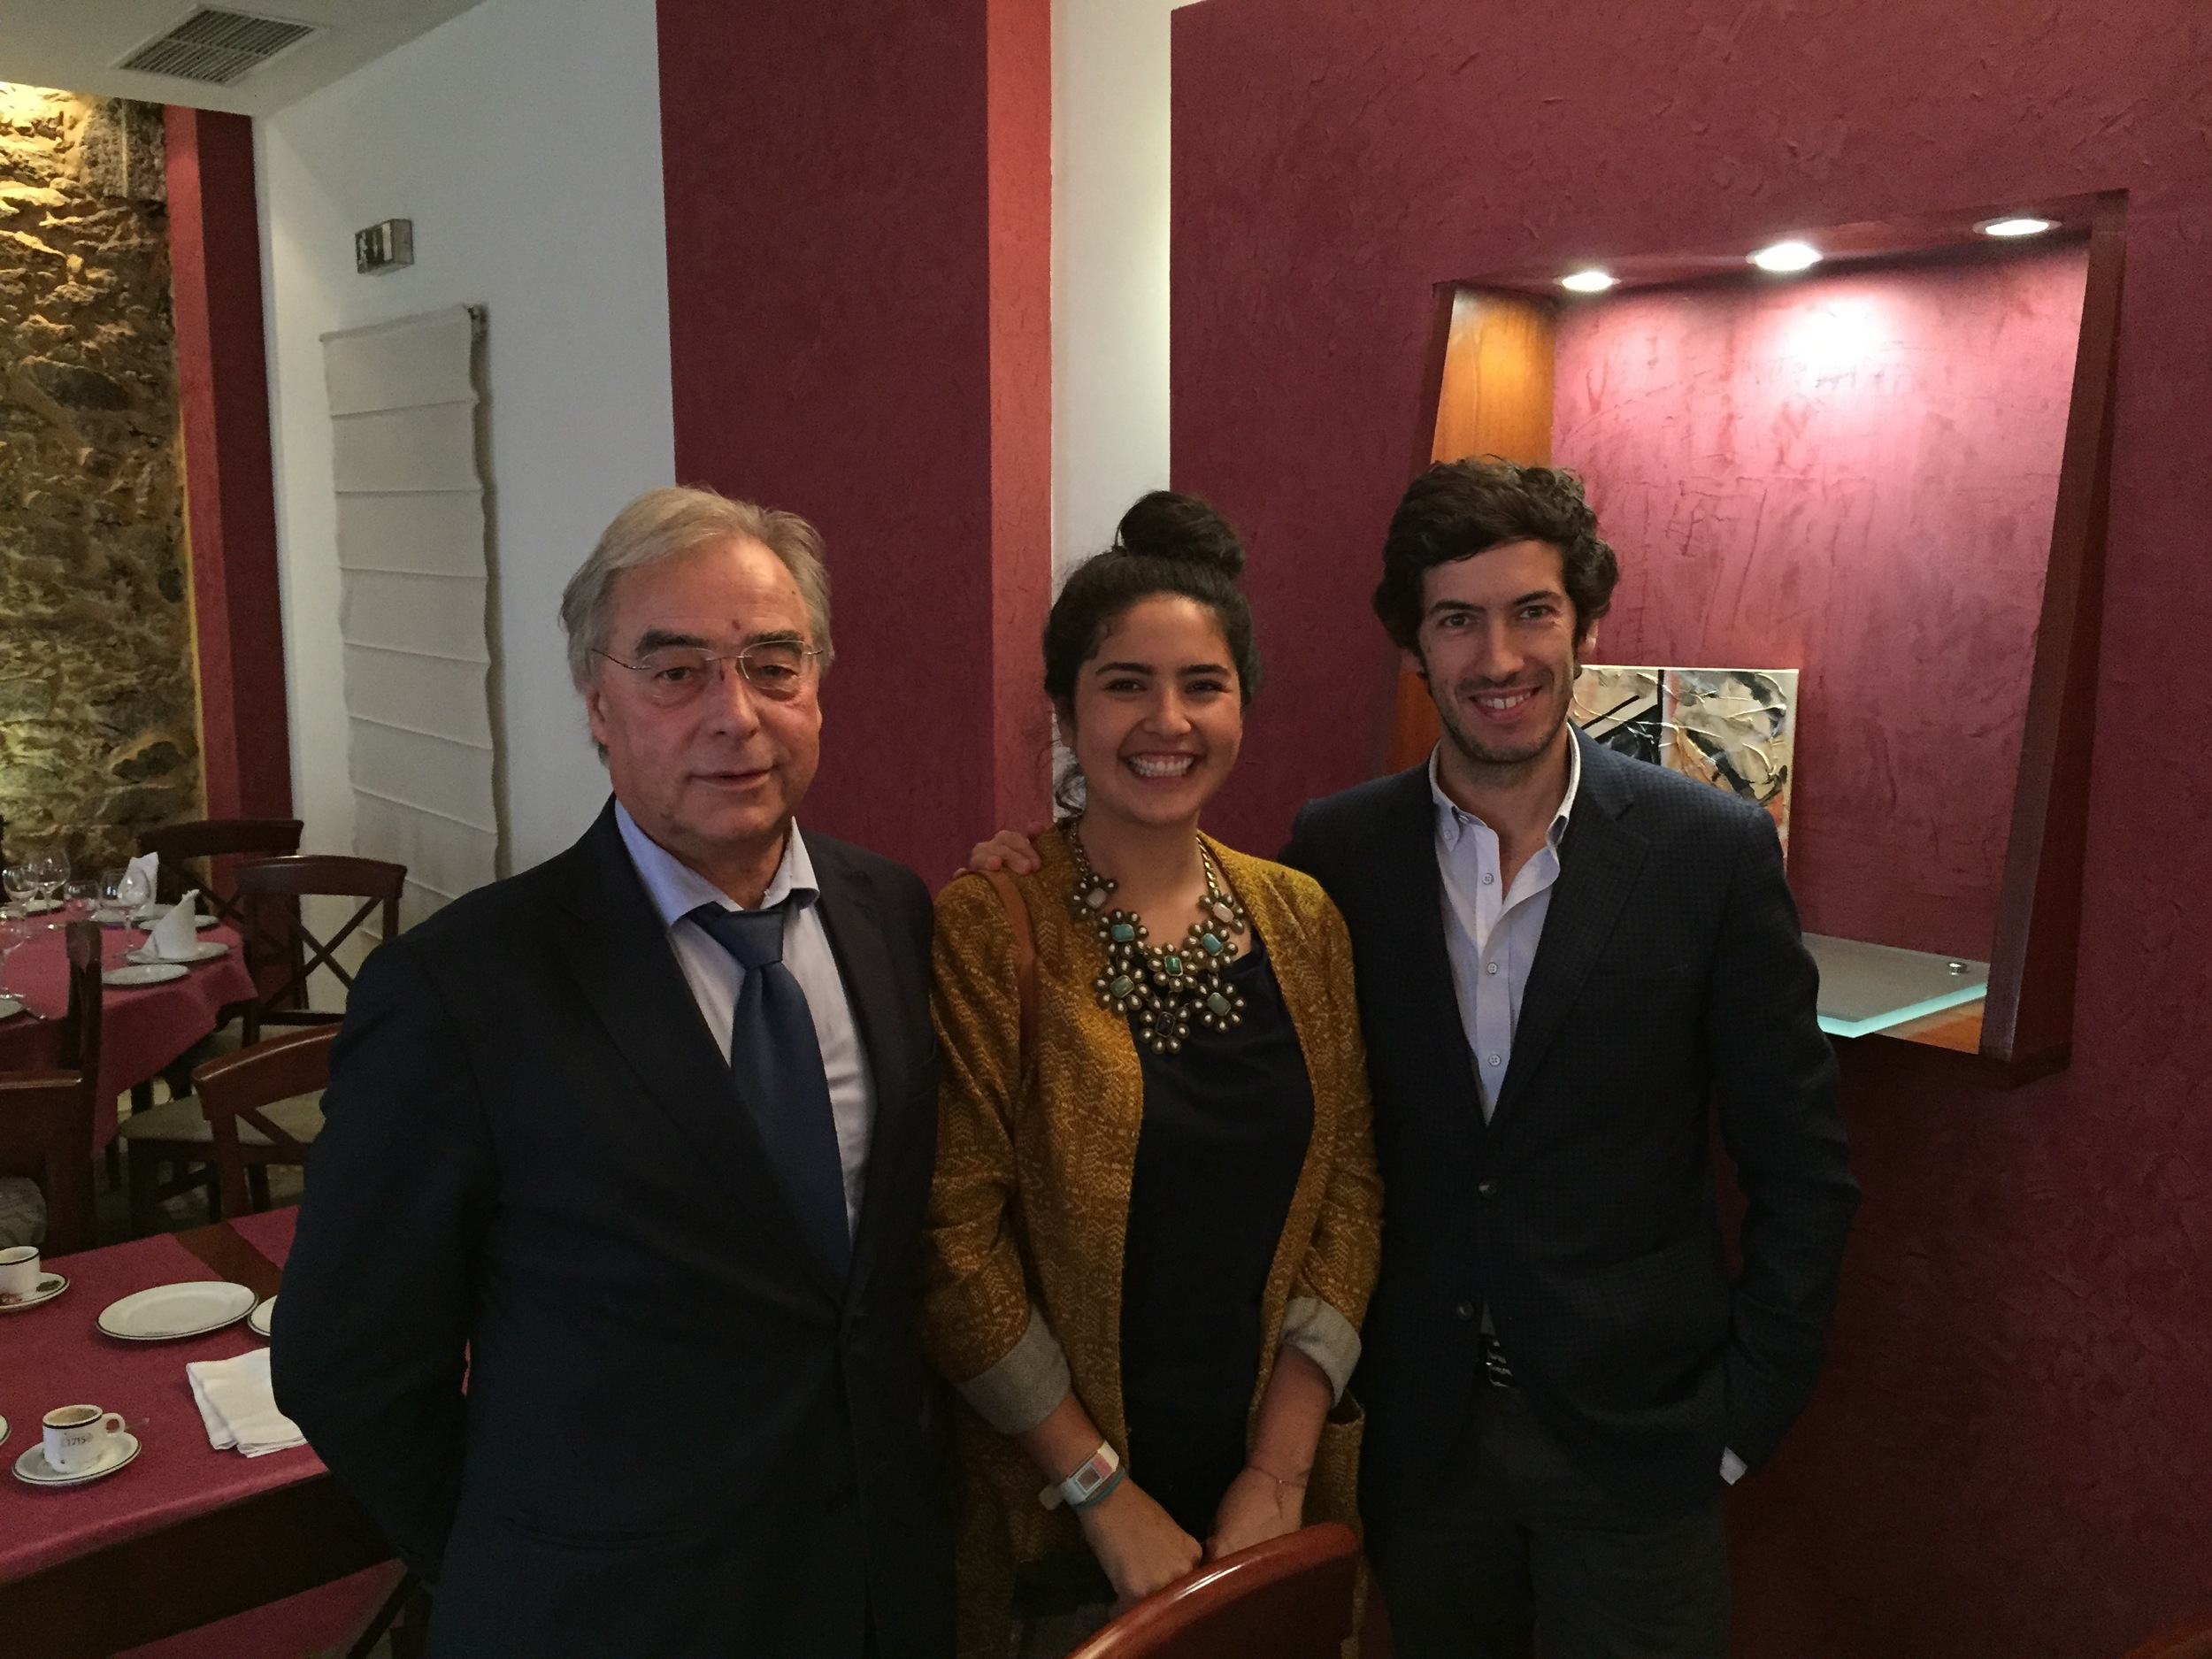 Myself with the President (João Rui Ferreira)and Vice President (Carlos Manuel)of the Portuguese Cork Association!